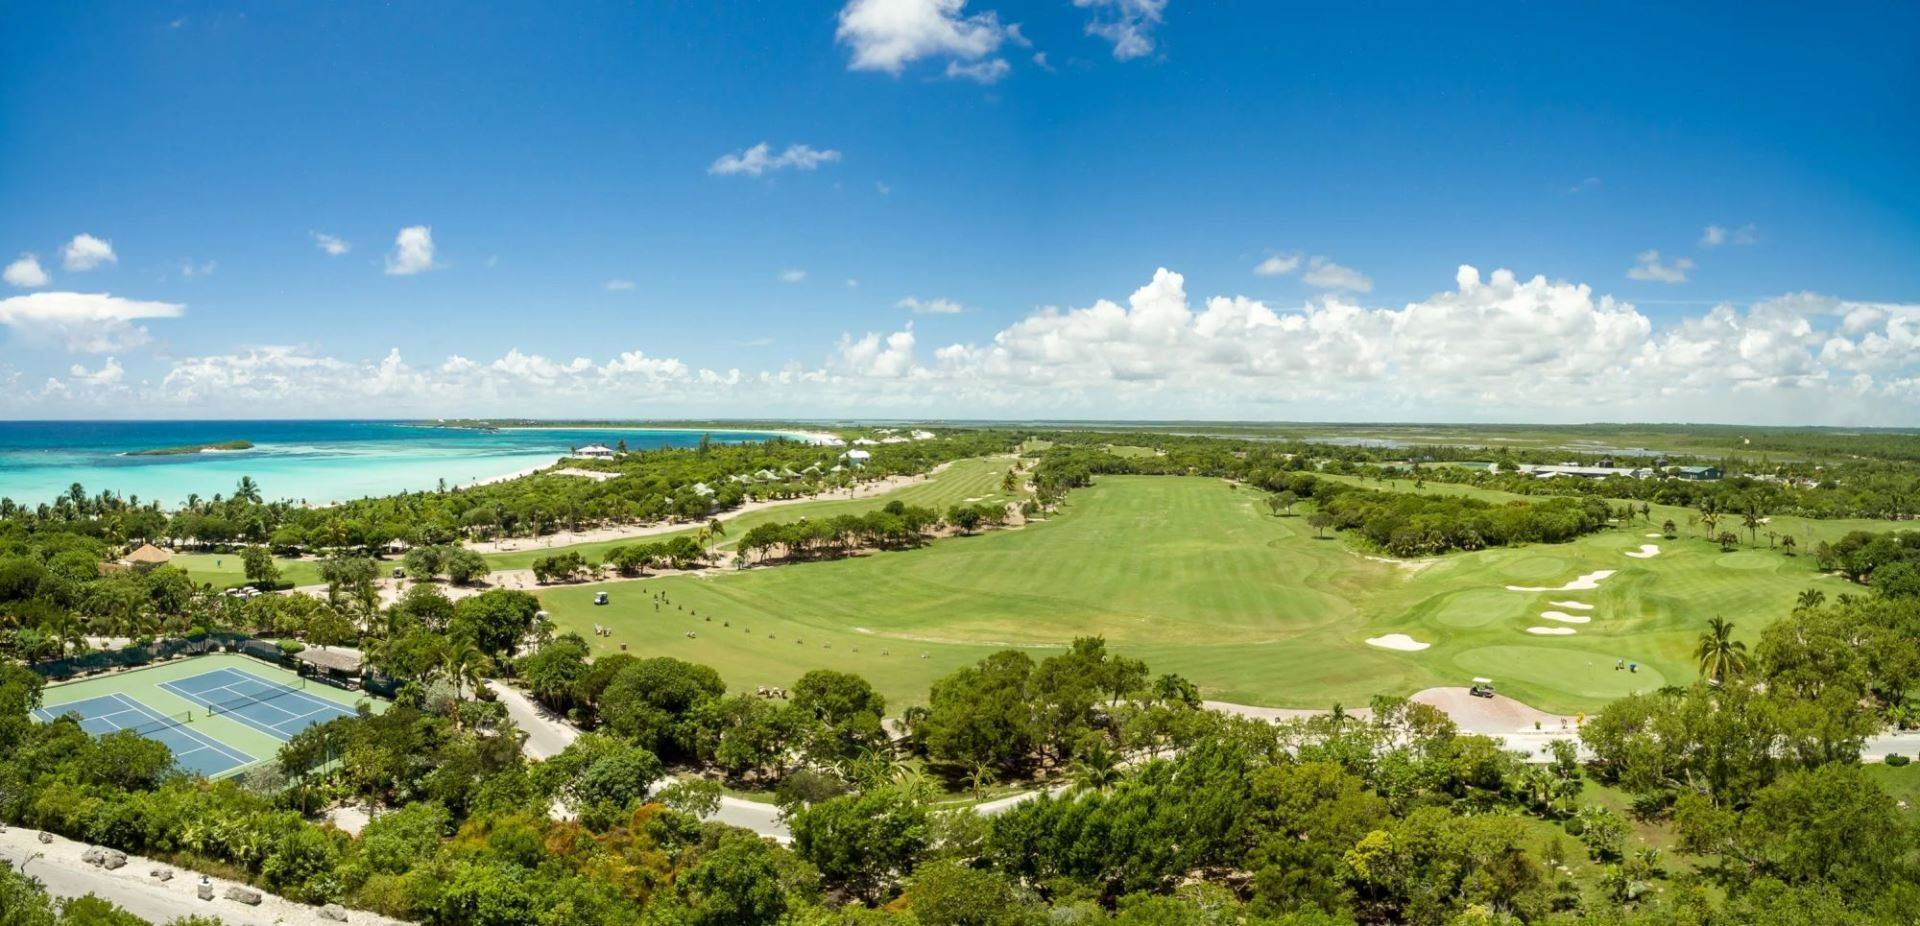 Land for Sale at Stunning private Golf and Atlantic Estate Lot 314 Winding Bay Winding Bay, Abaco, Bahamas